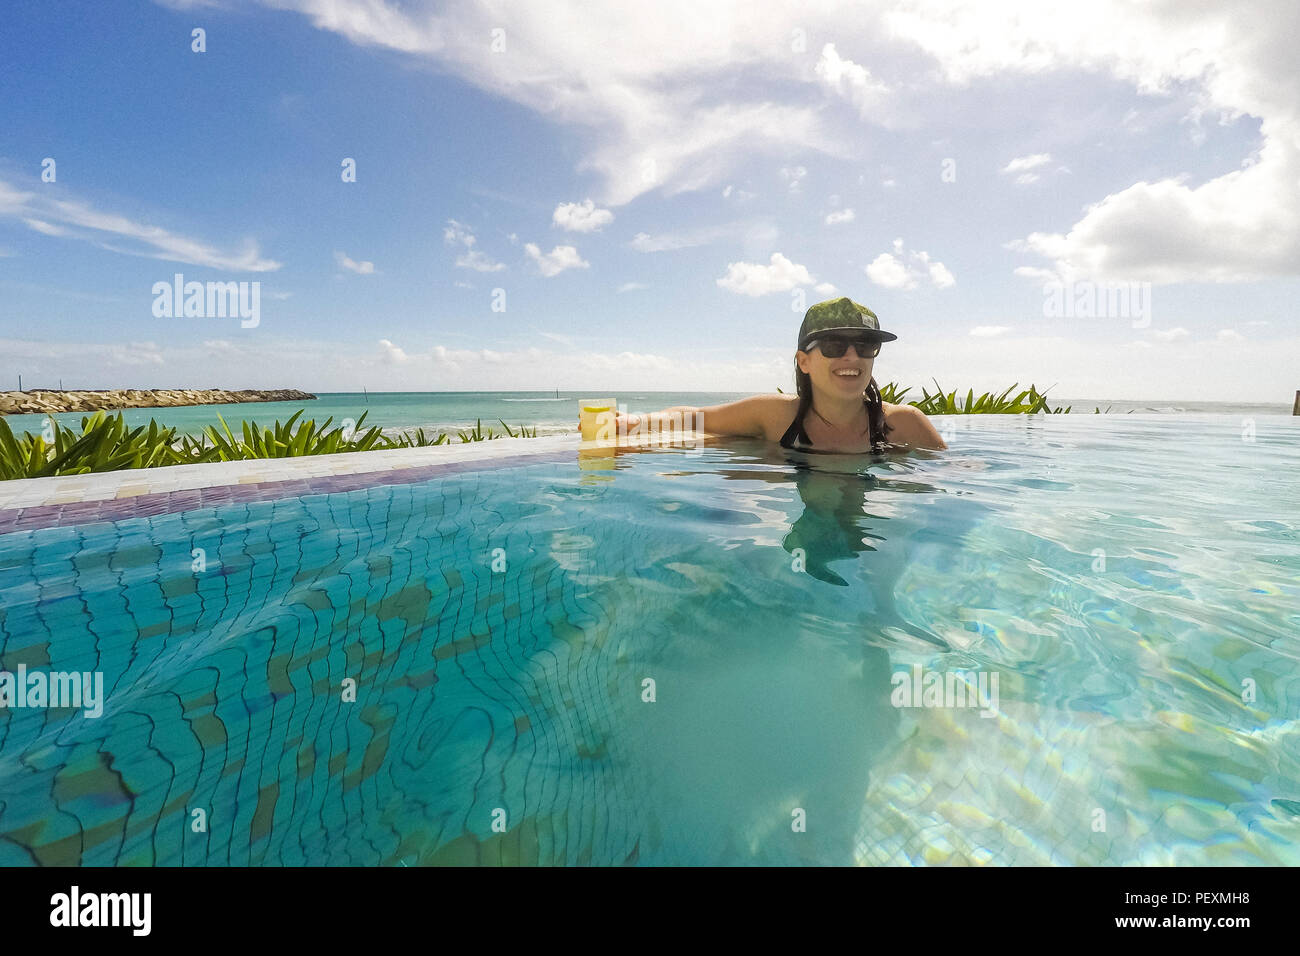 Woman swimming in oceanside swimming pool with cocktail - Stock Image